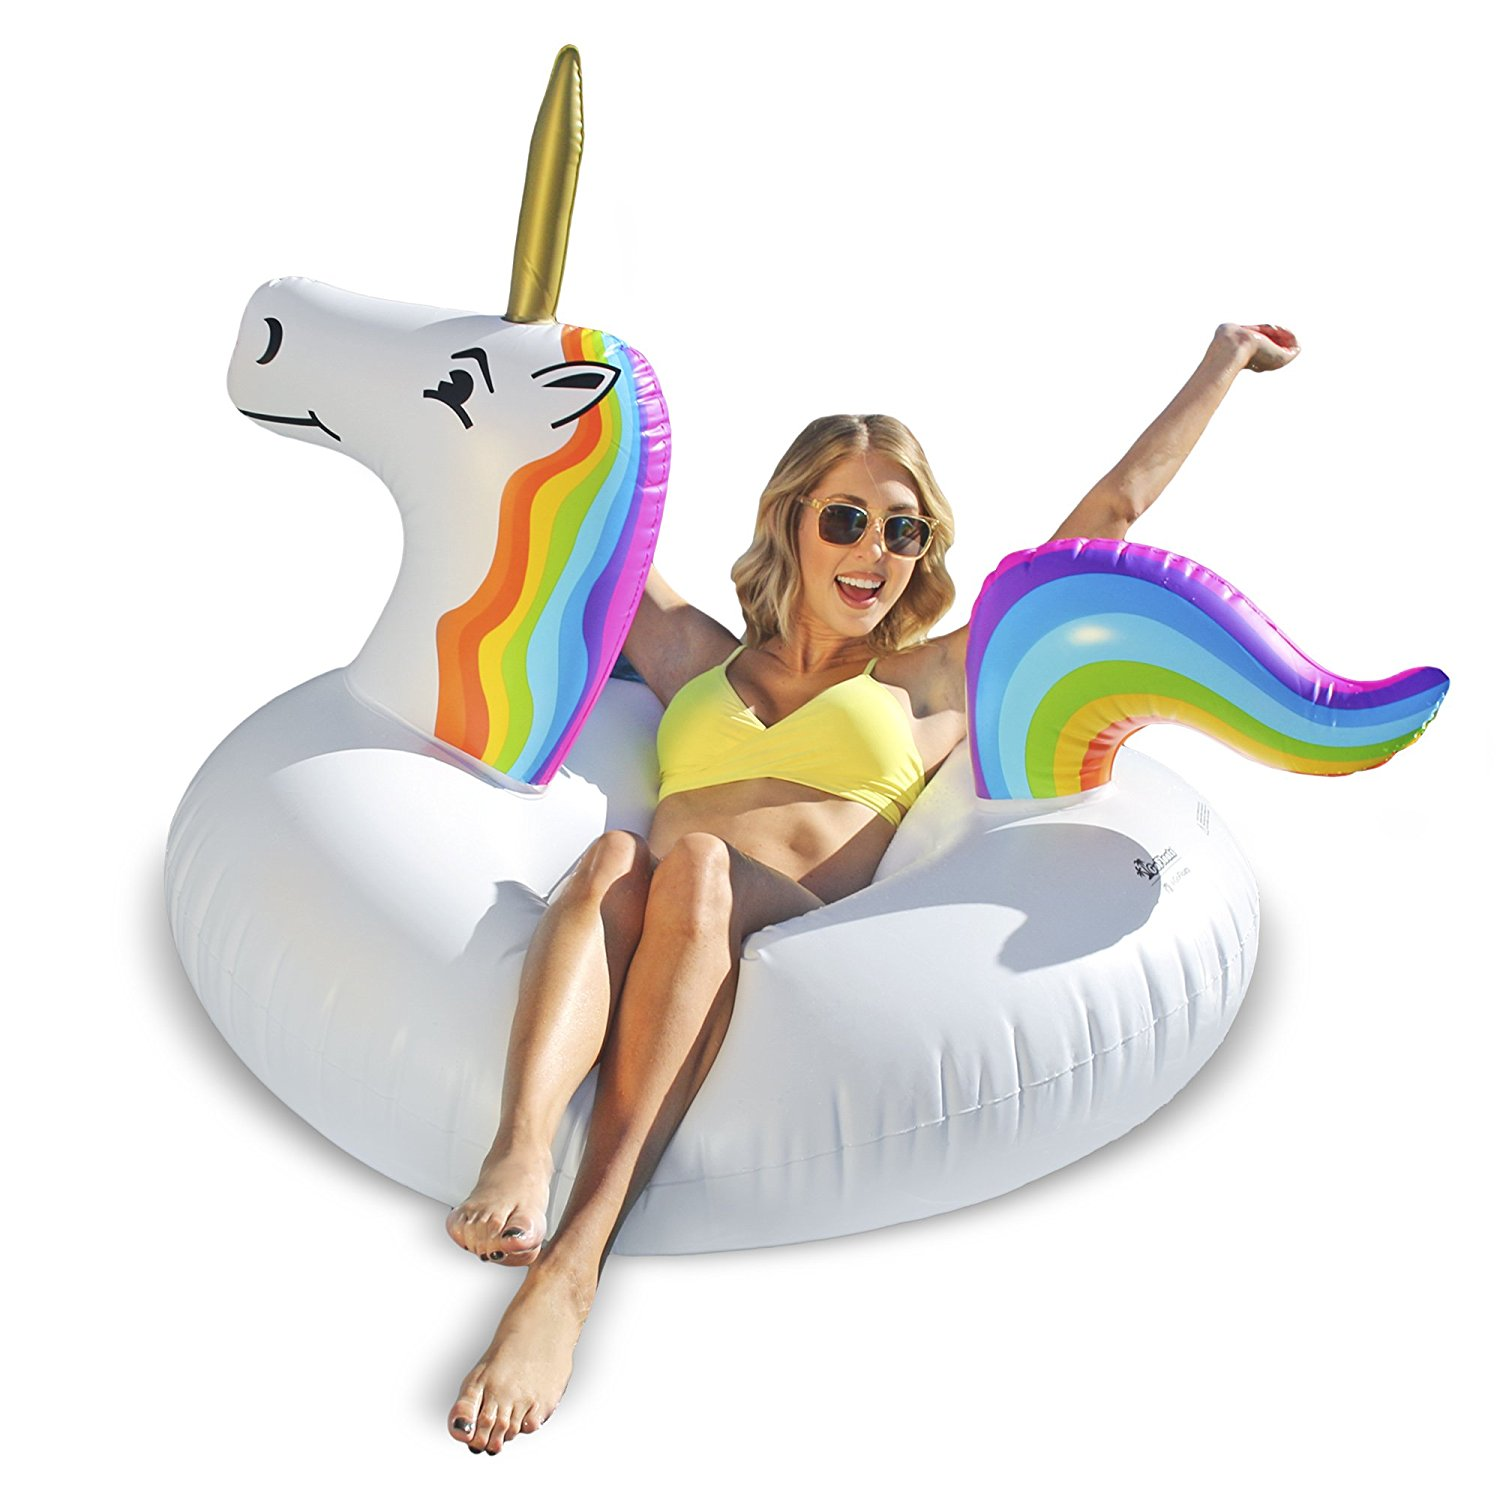 3 Foot Tall Unicorn Pool Float